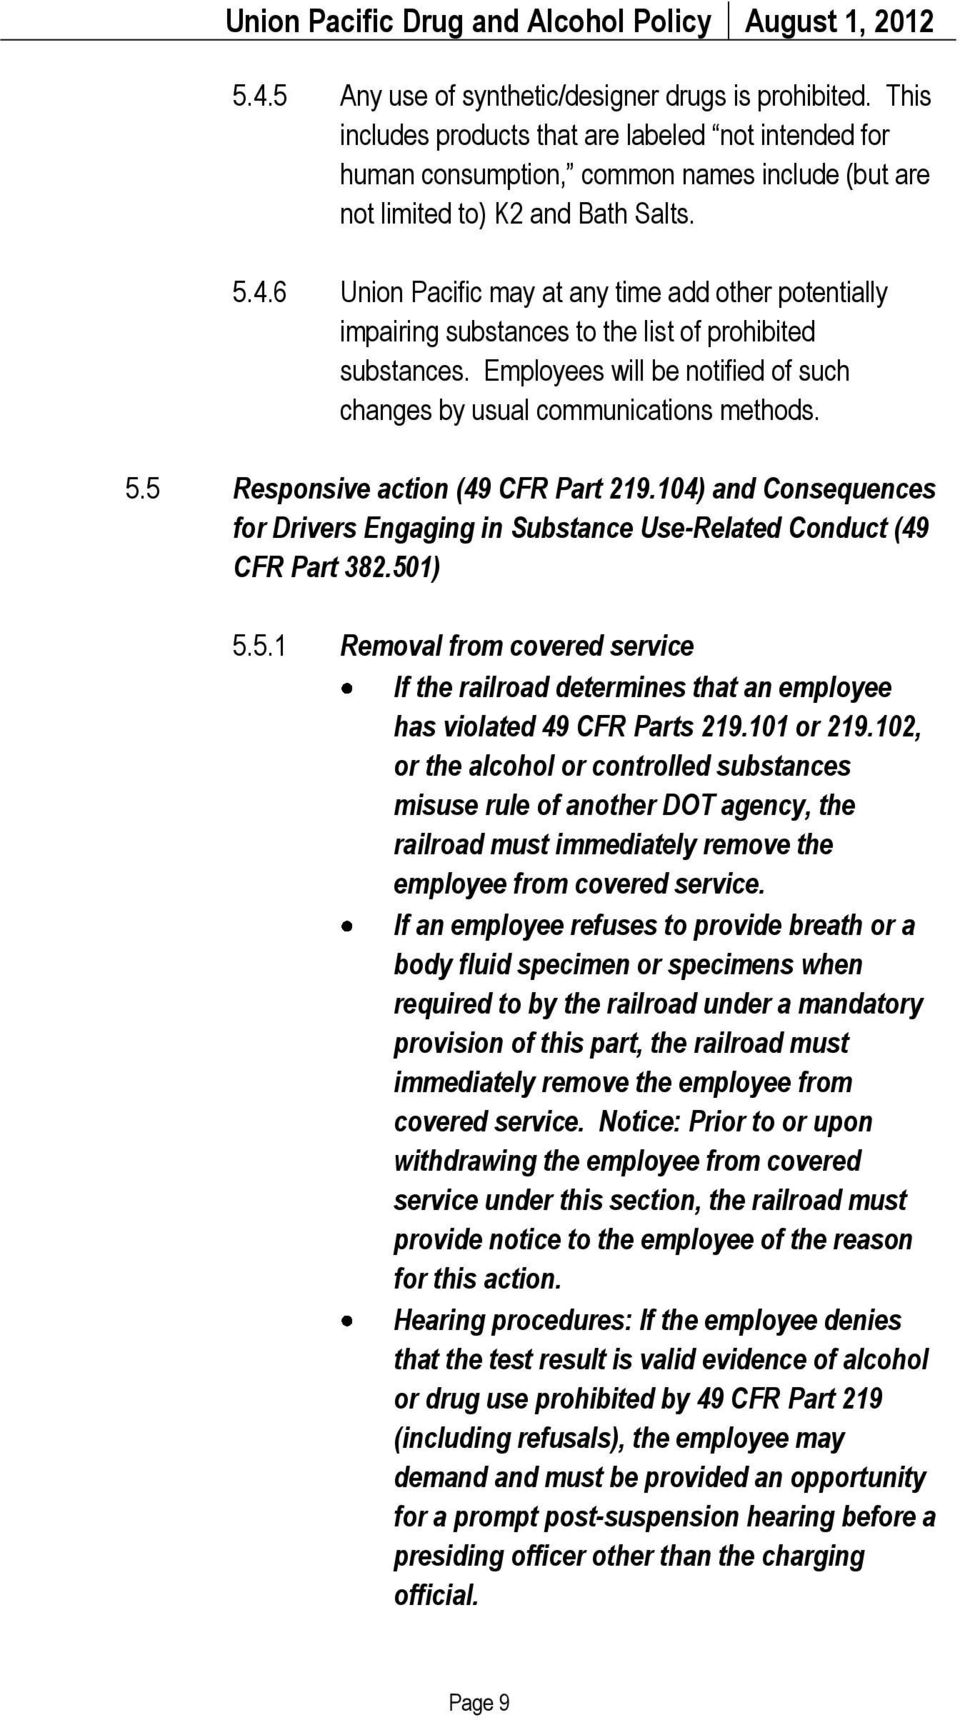 5 Responsive action (49 CFR Part 219.104) and Consequences for Drivers Engaging in Substance Use-Related Conduct (49 CFR Part 382.501) 5.5.1 Removal from covered service If the railroad determines that an employee has violated 49 CFR Parts 219.